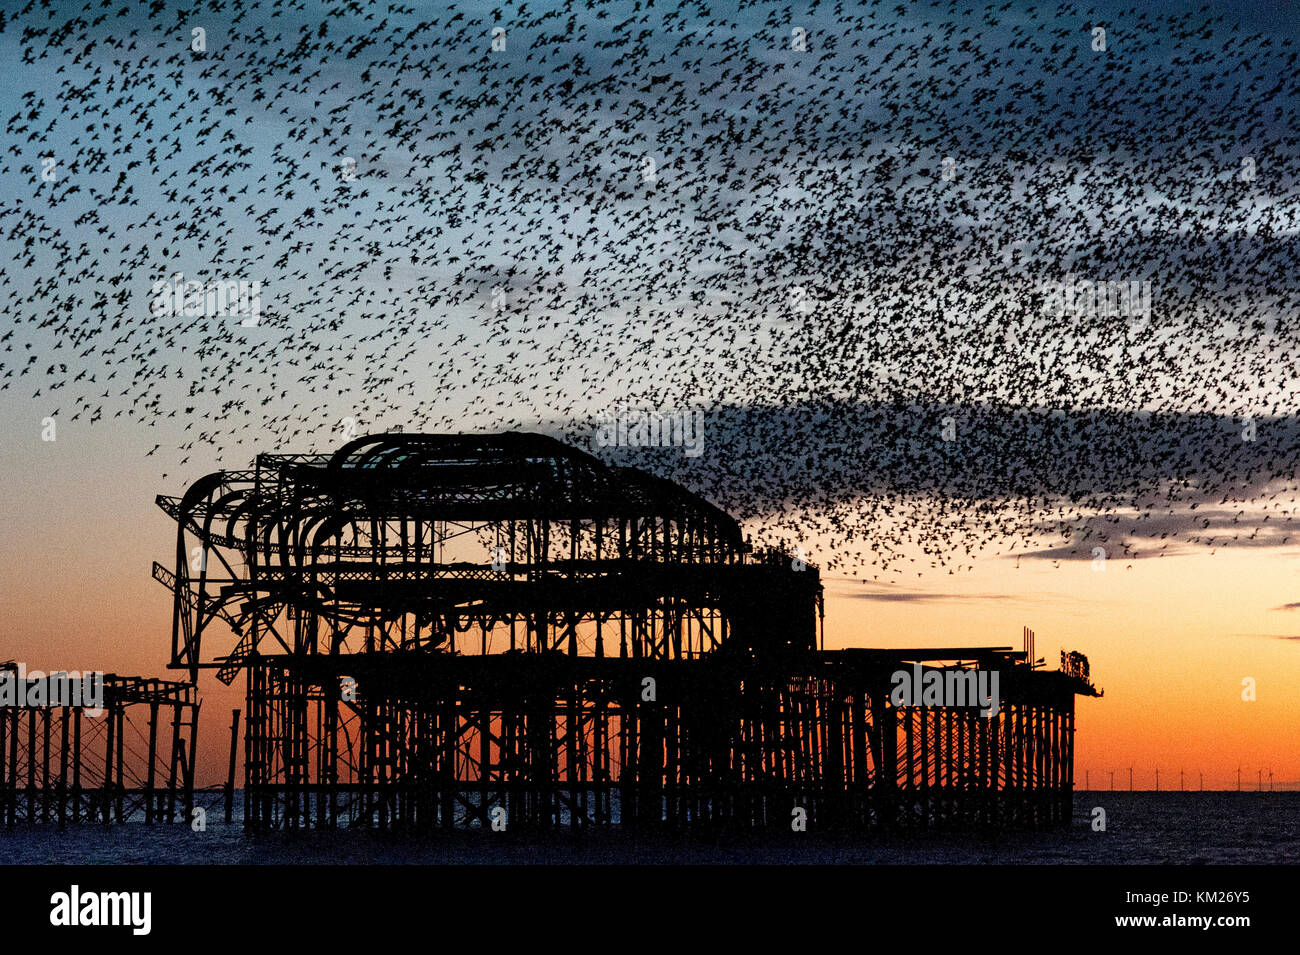 Murmuration over the ruins of Brighton's West Pier on the south coast of England. A flock of starlings swoops in unified mass over the pier at sunset. Stock Photo